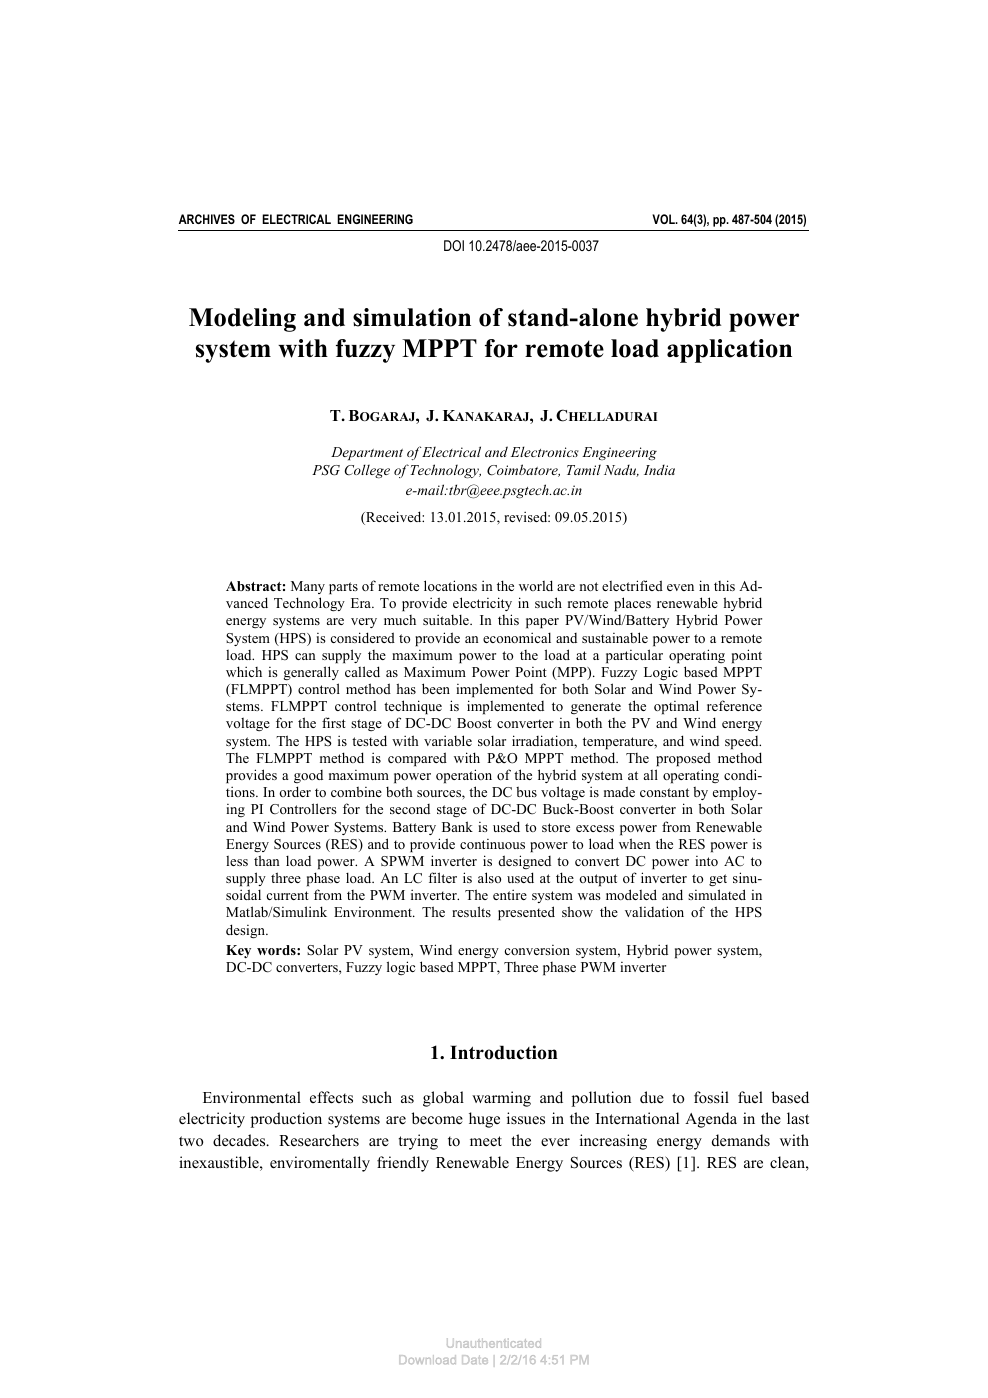 Modeling and simulation of stand-alone hybrid power system